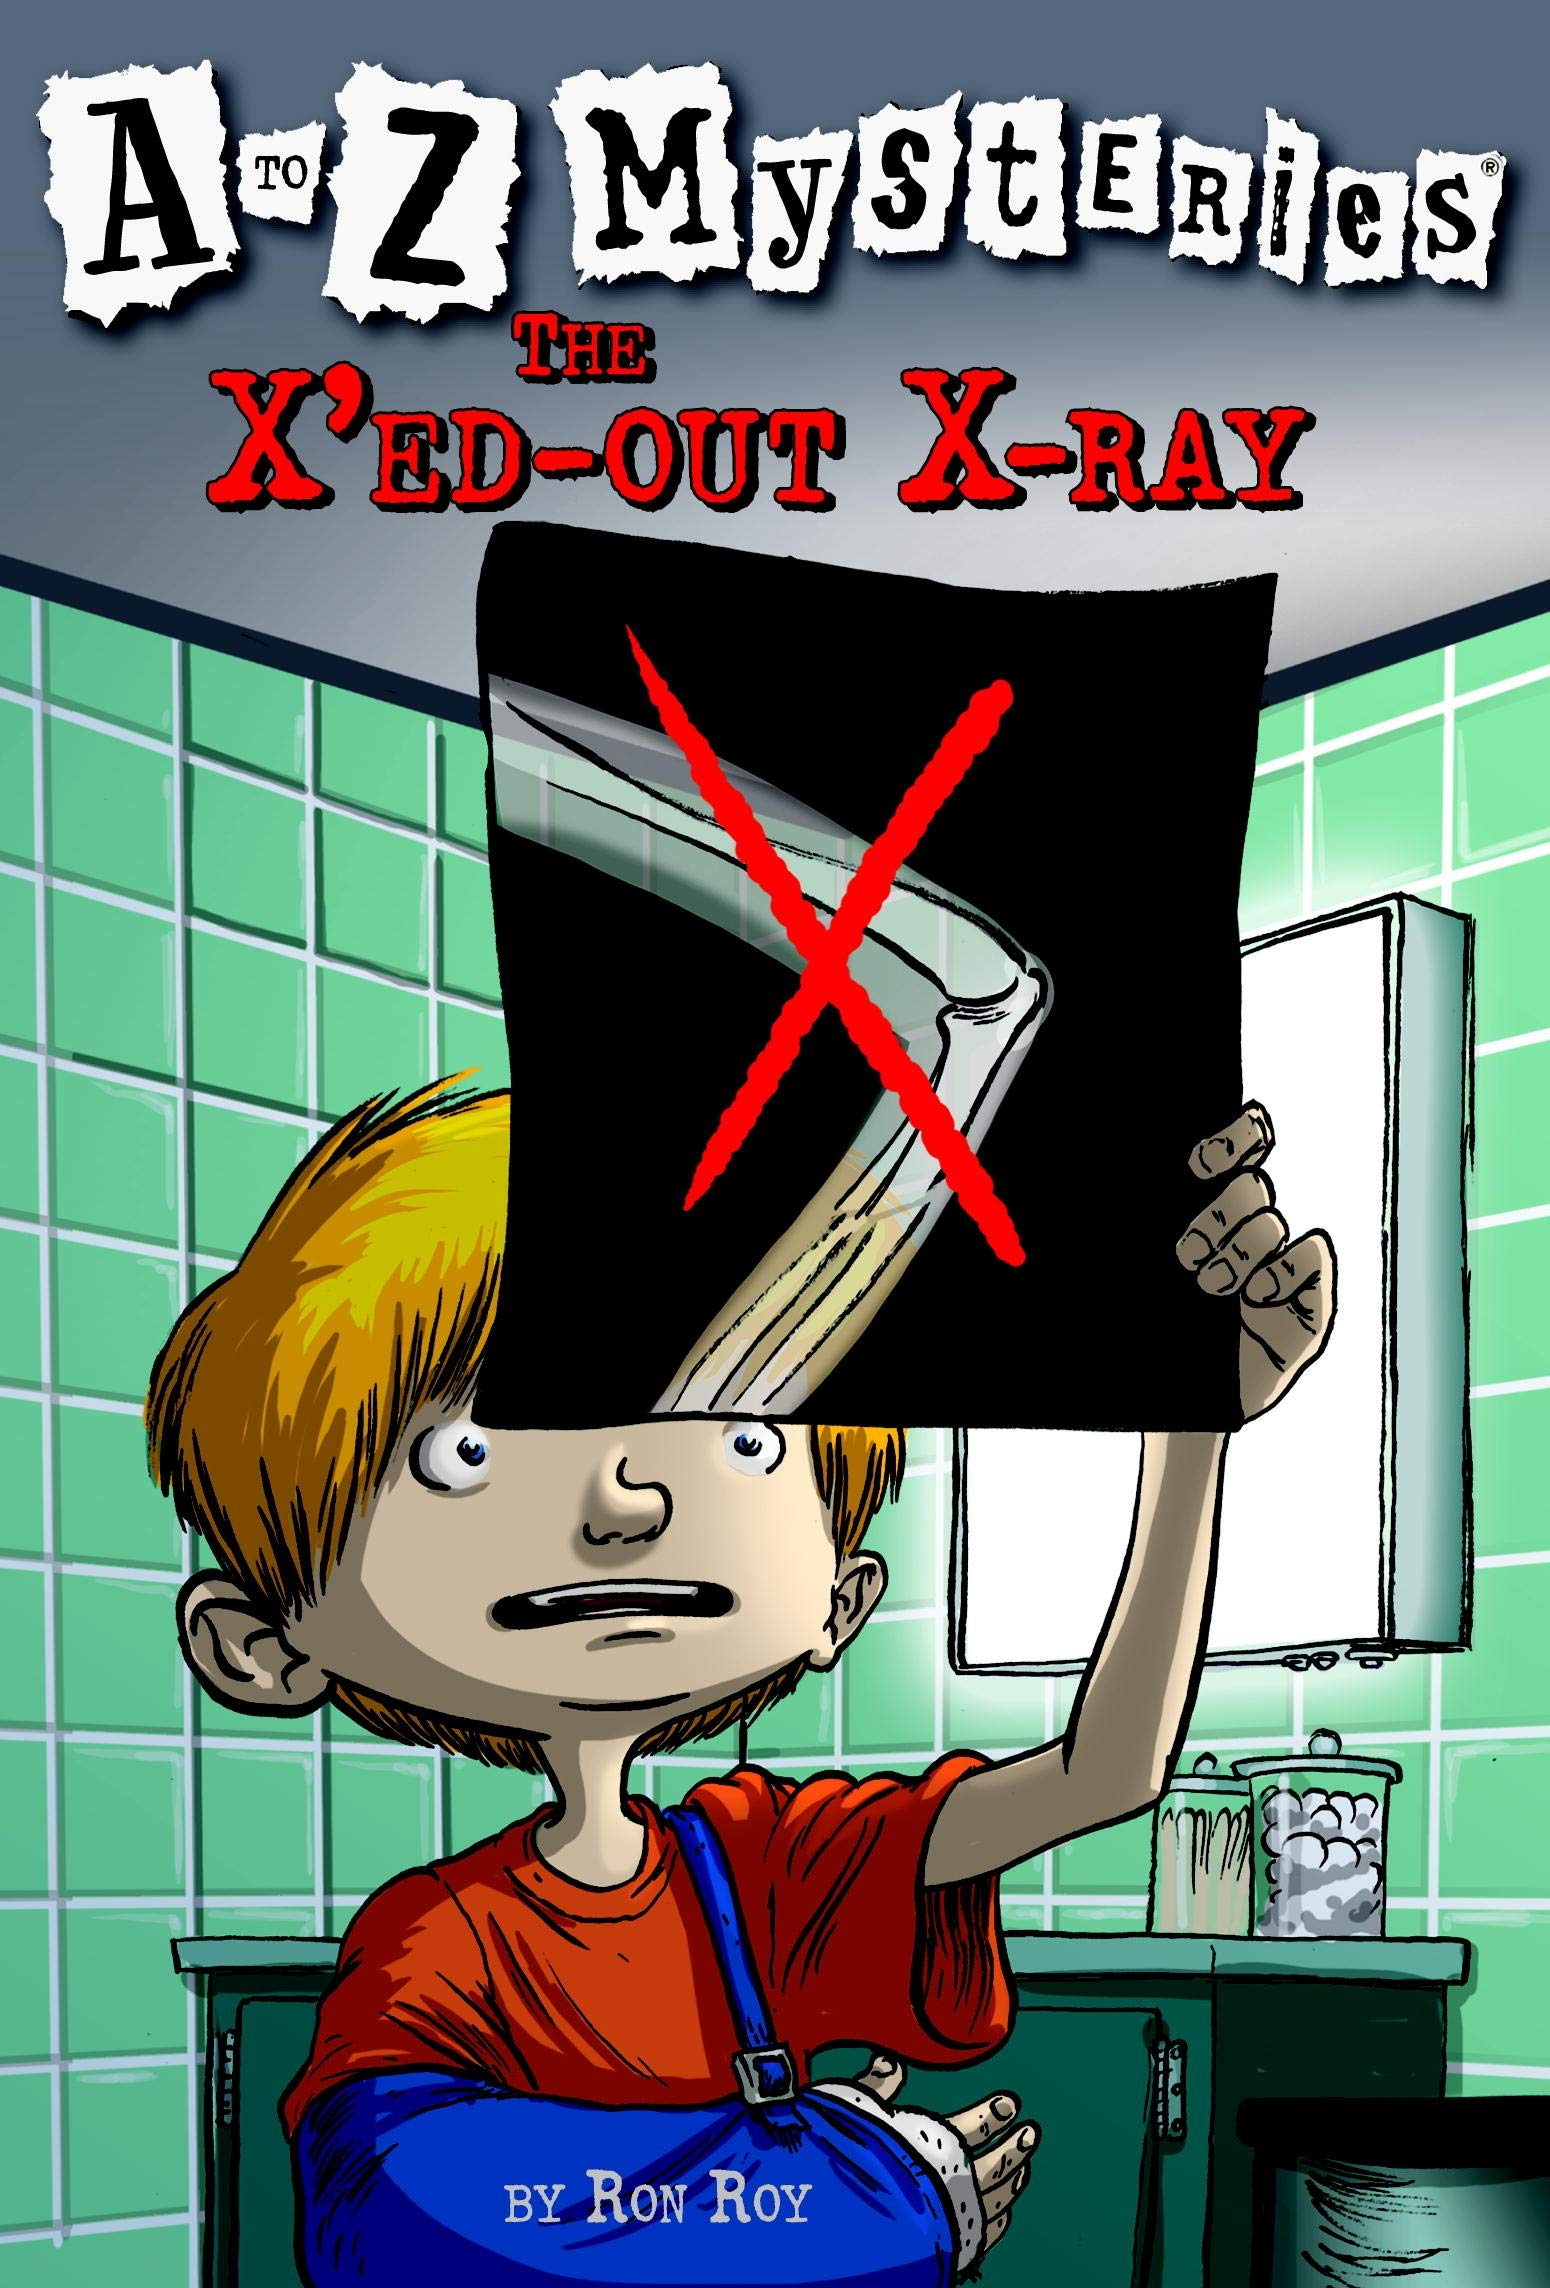 X'ed-out X-ray The (to Z Mysteries)